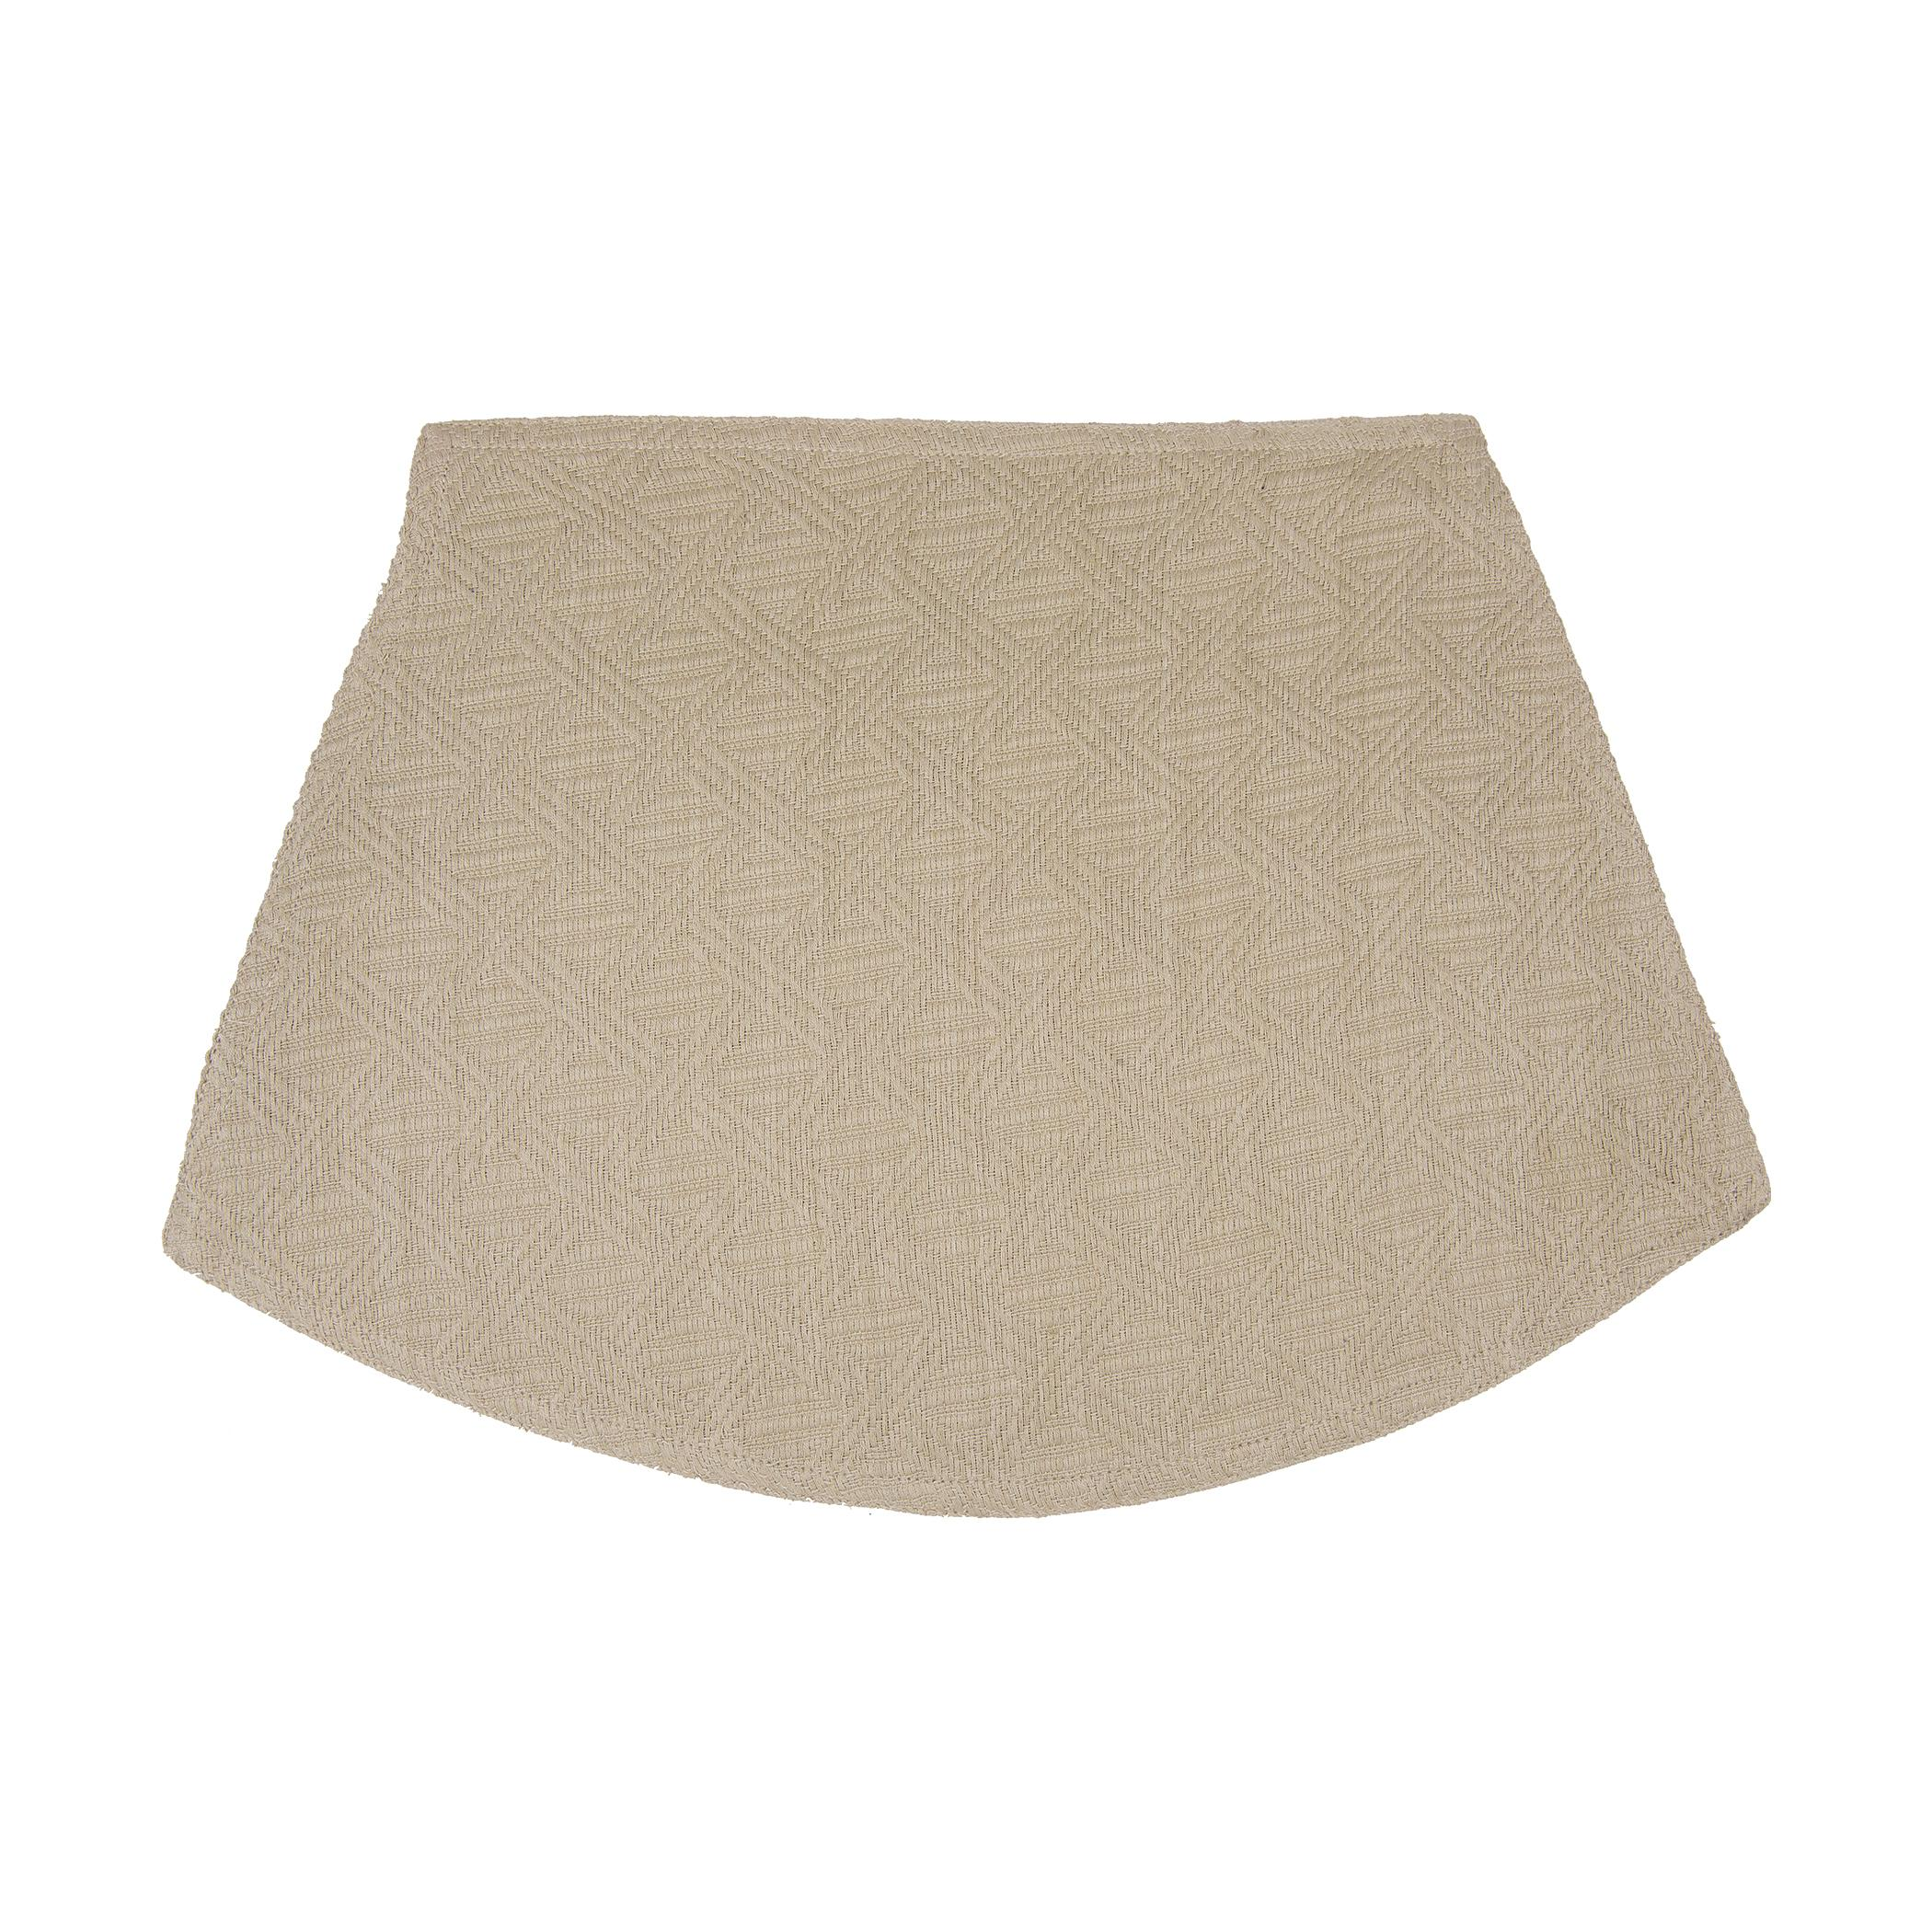 lintex linens placemat wedge shape for round table